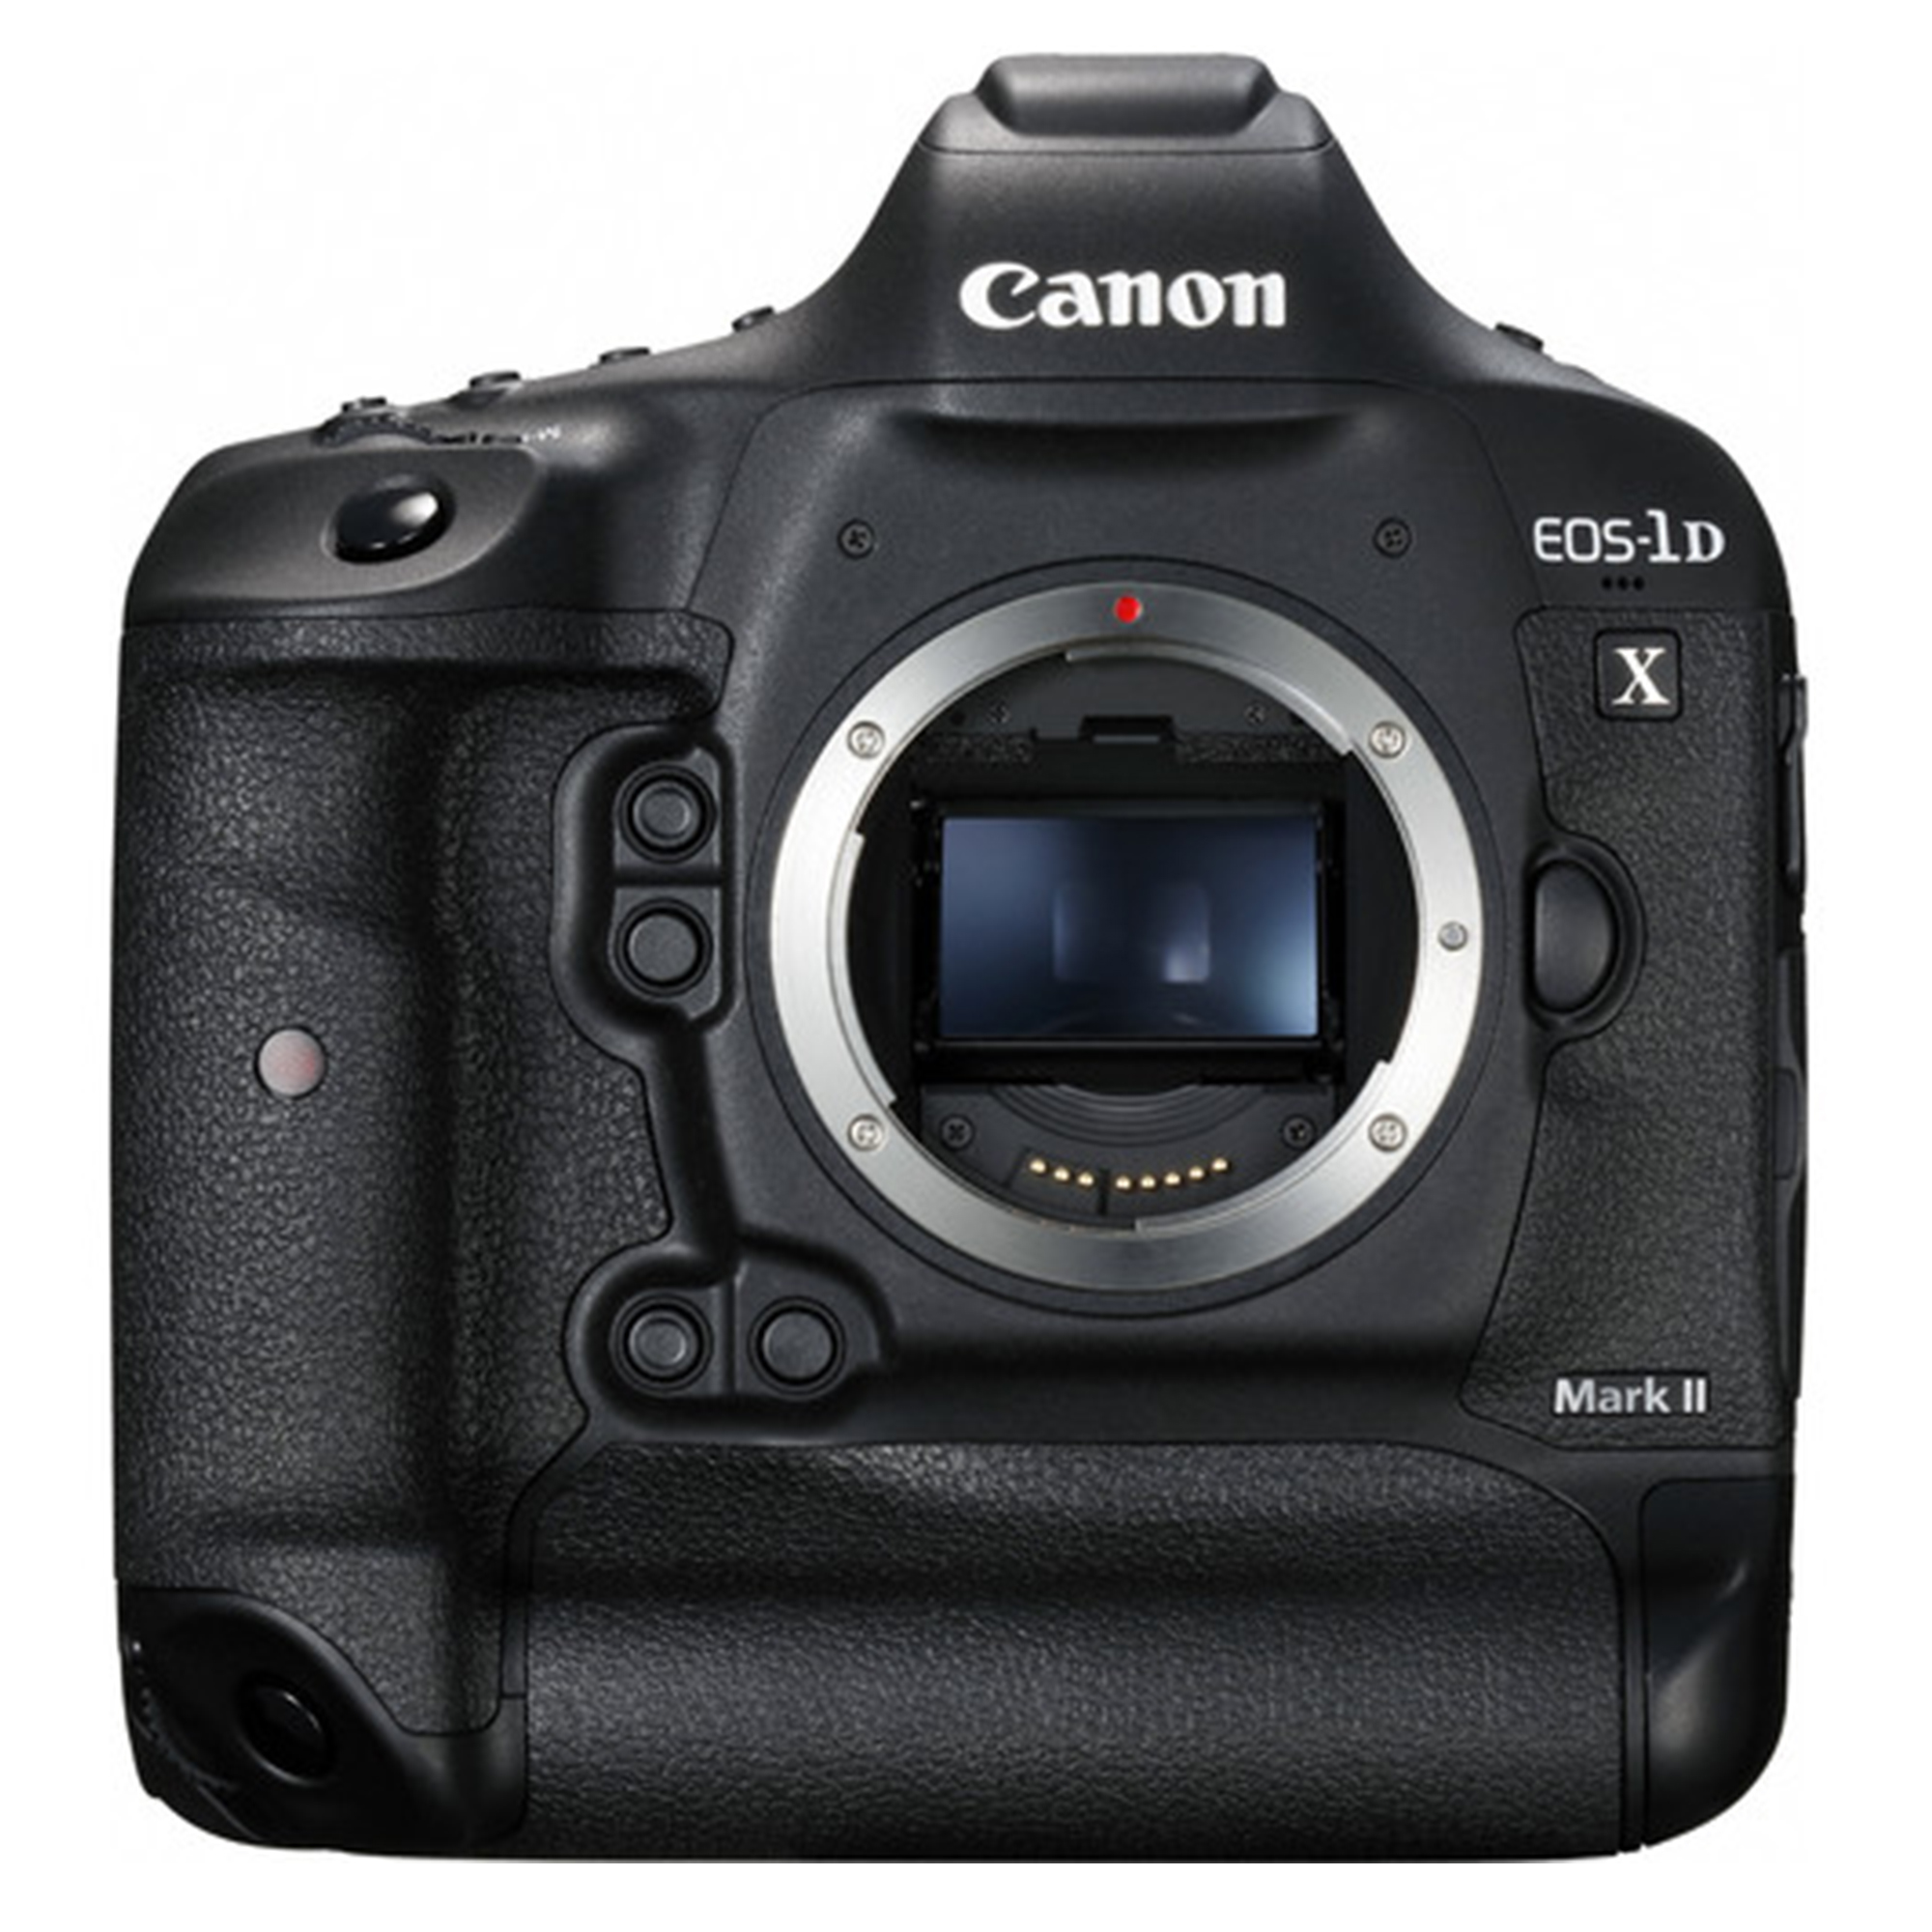 Canon EOS-1D X Mark II DSLR Camera (Body Only) + free Gift VANGUARD QUOVIO 26, VANGUARD ALTA PRO 263AGH